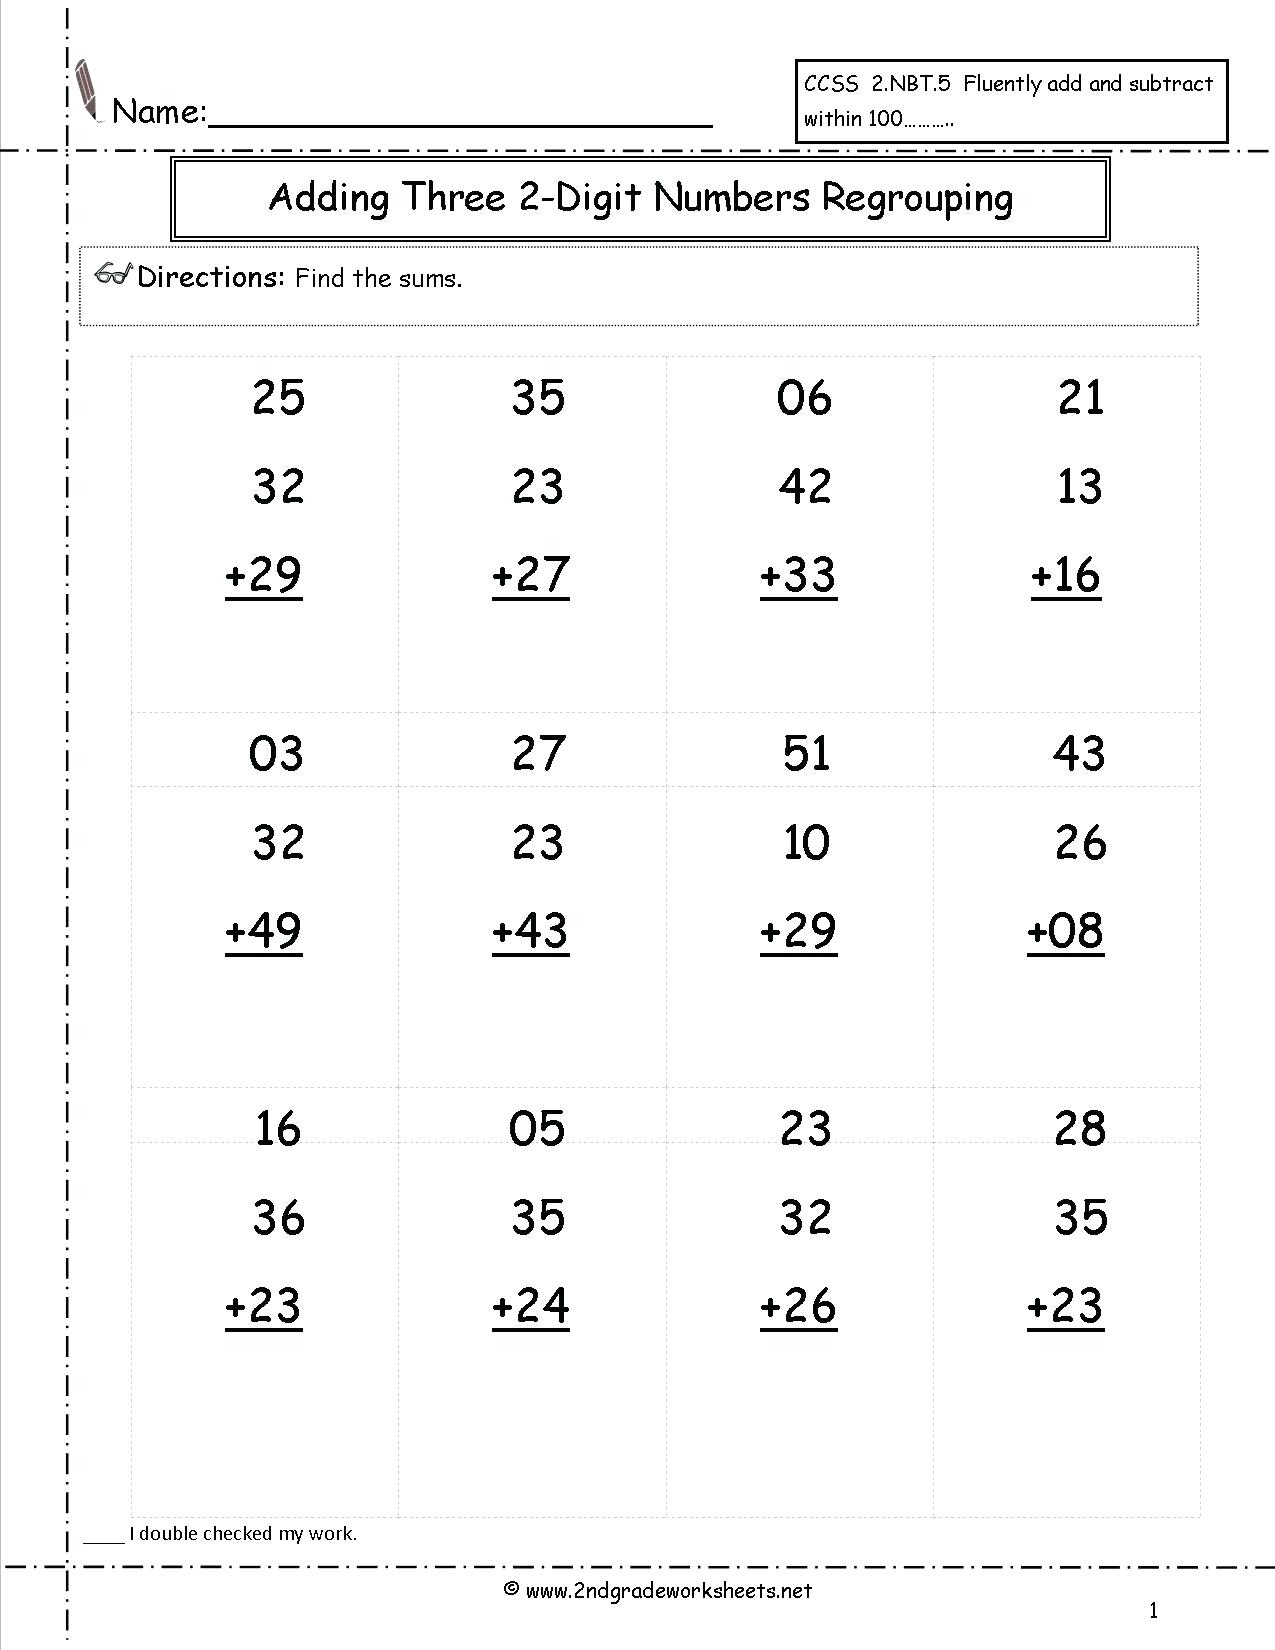 Worksheet : Elementary Social Studies Worksheets Multiplication 4S | Elementary Social Studies Worksheets Printable